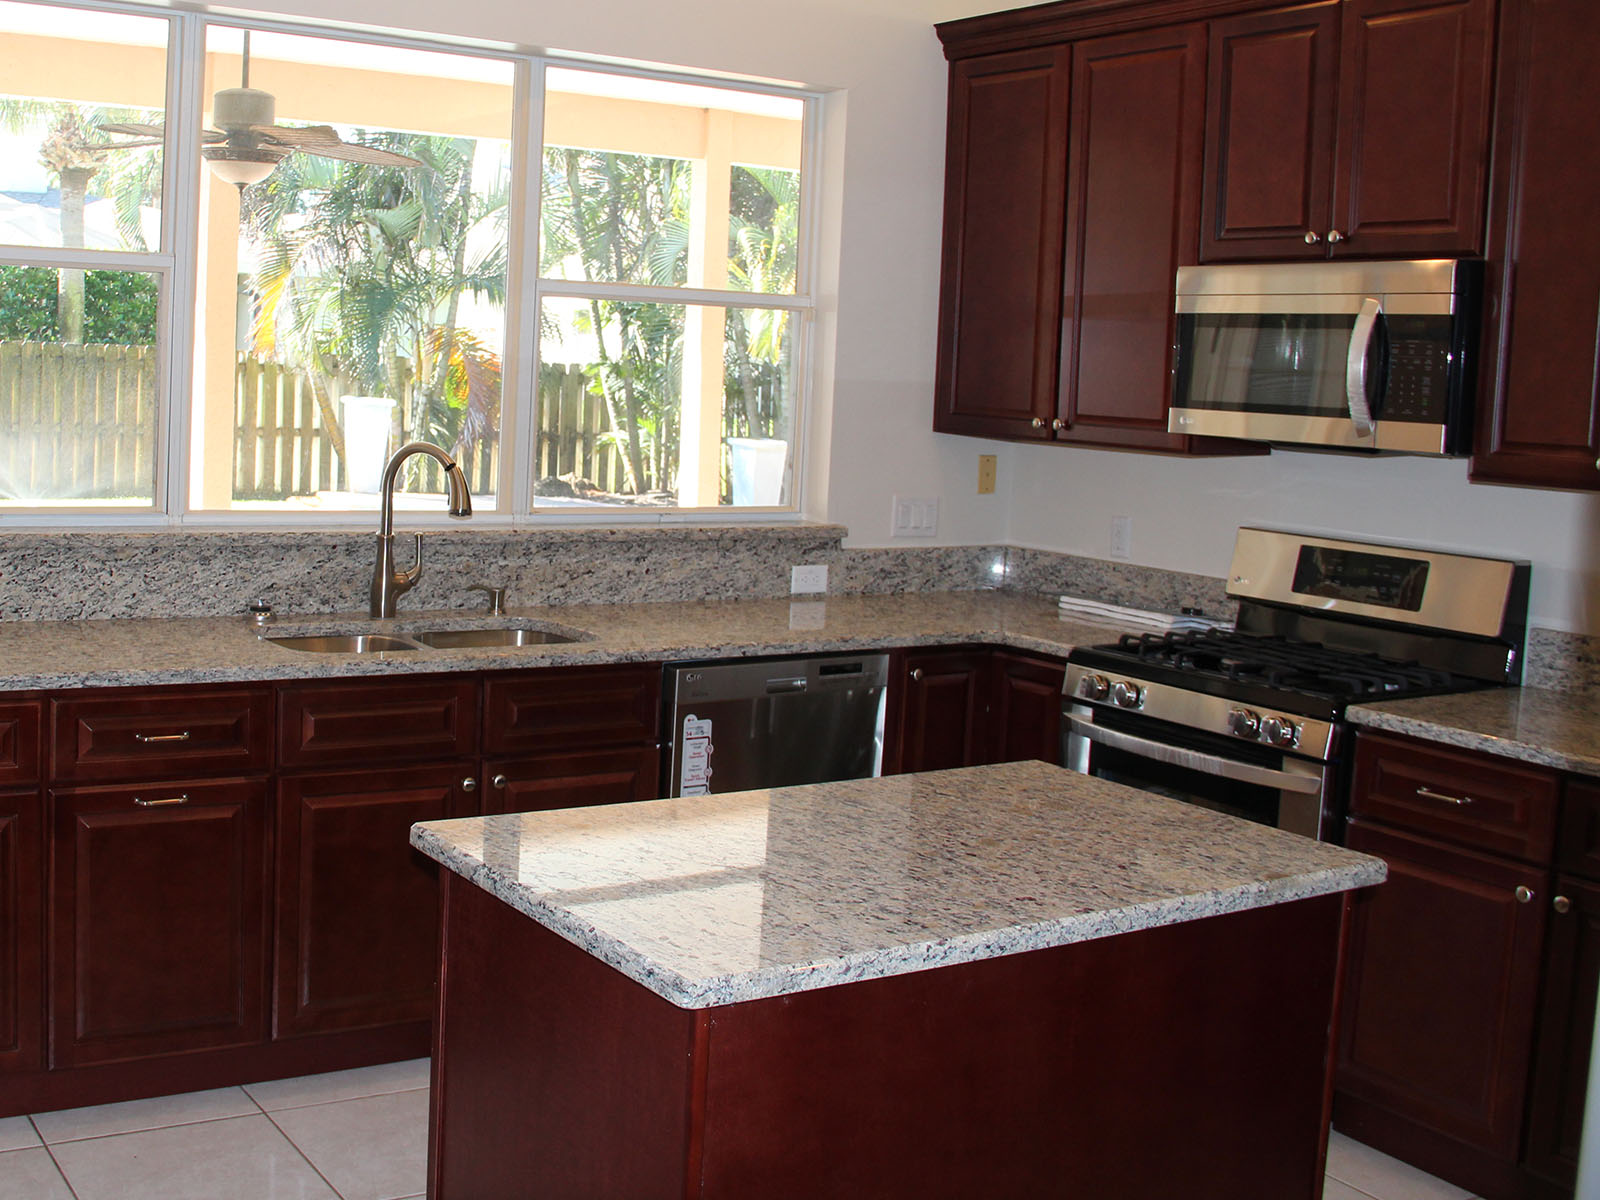 Kitchen Countertops Cabinets And Baths Sales And Installation In Melbourne Florida R R Kitchen And Bath